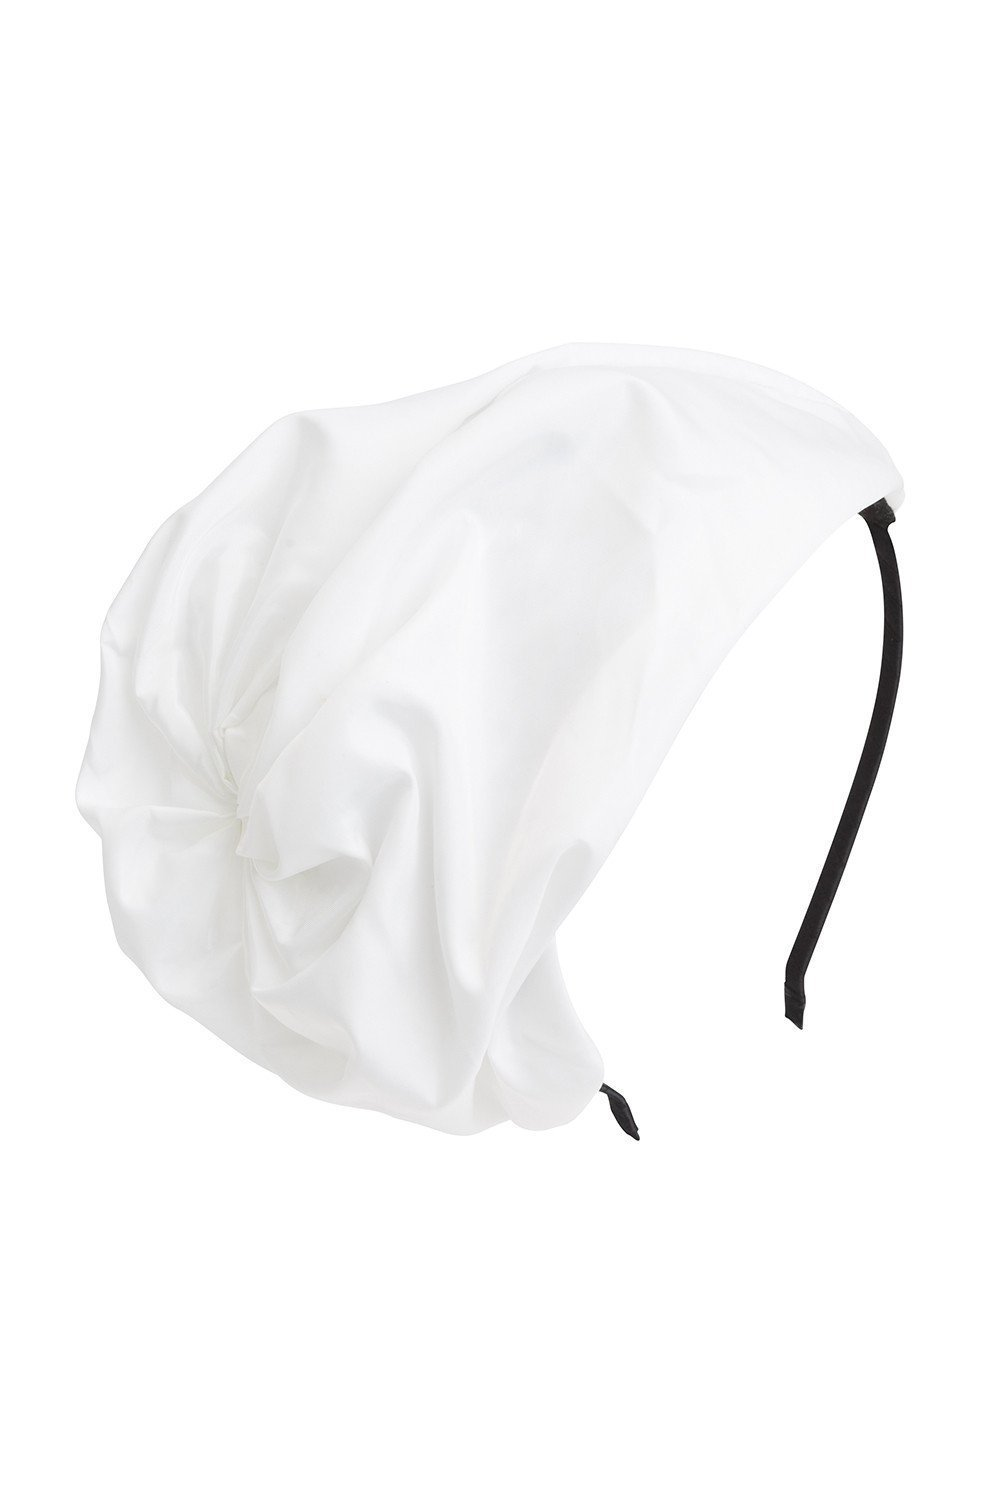 Petit Hat - White Taffeta - PROJECT 6, modest fashion